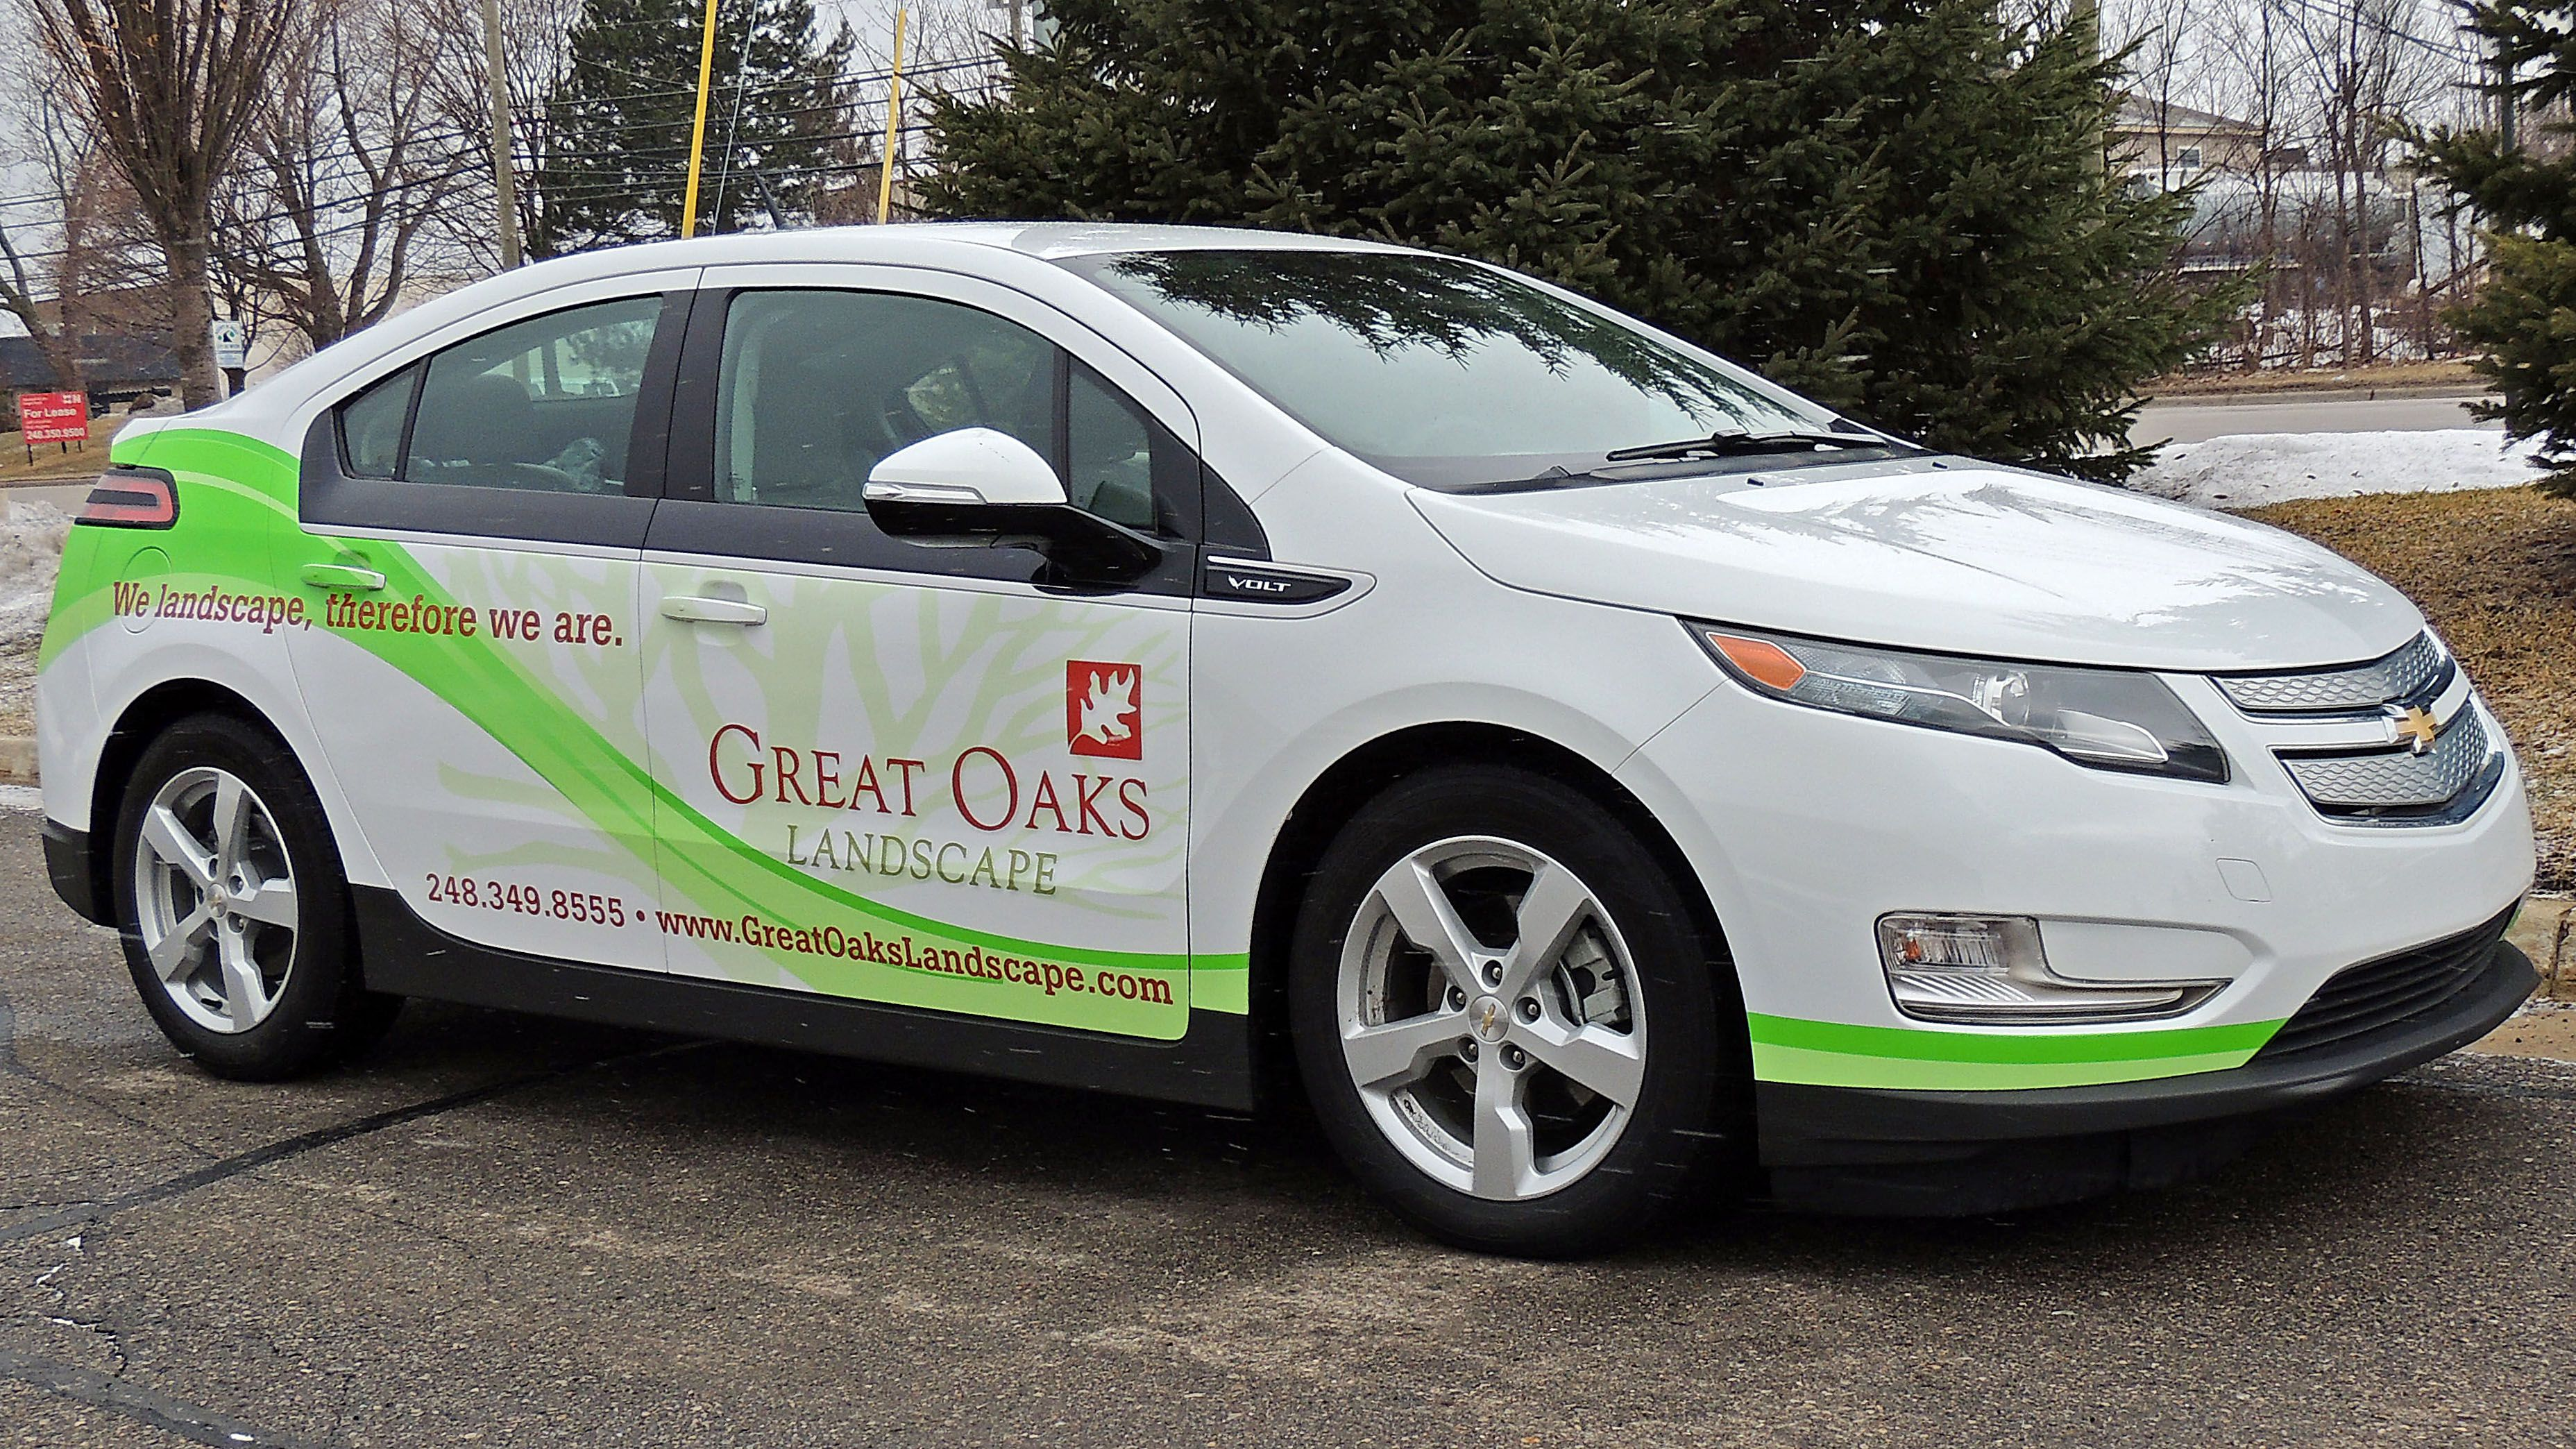 Chevy Volt Full Vehicle Wrap For Great Oaks Landscaping Call Us